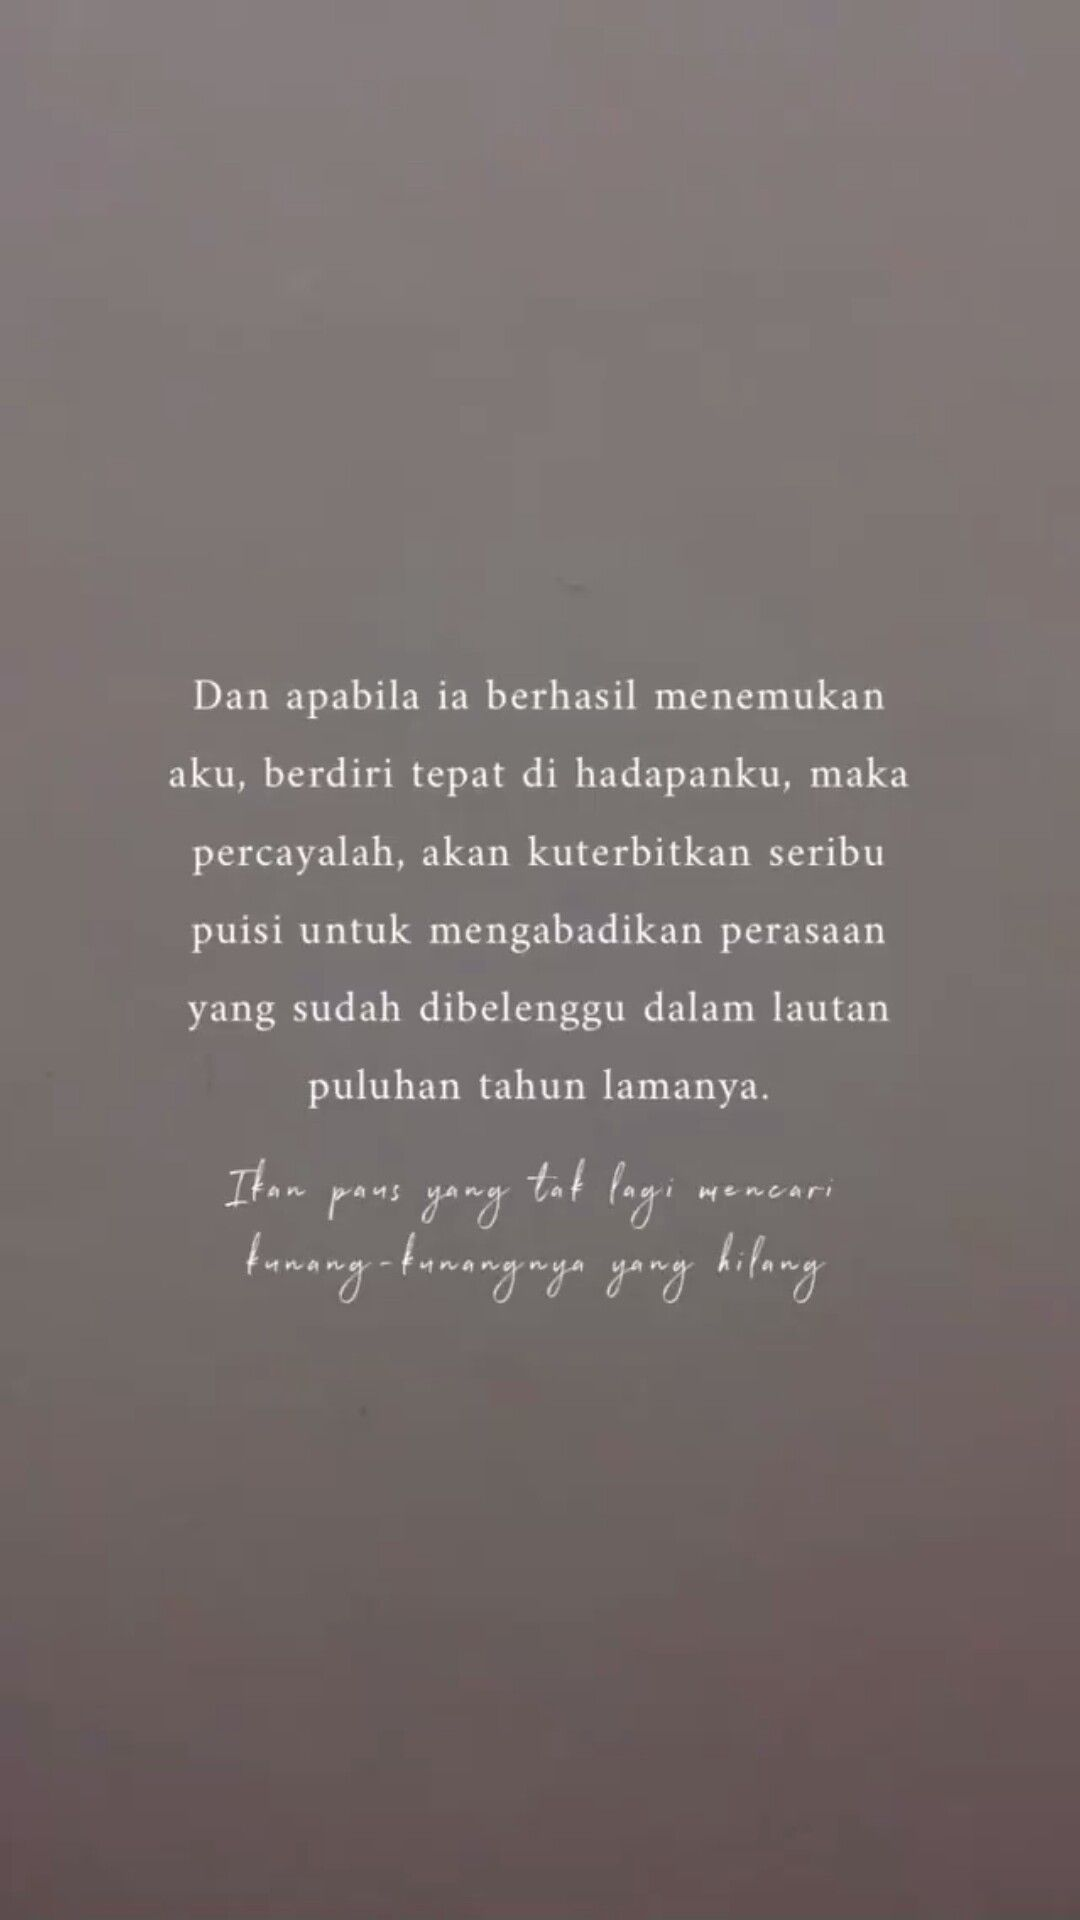 Quotes Quotes Pinterest Quotes Quotes Rindu And Quotes Indonesia